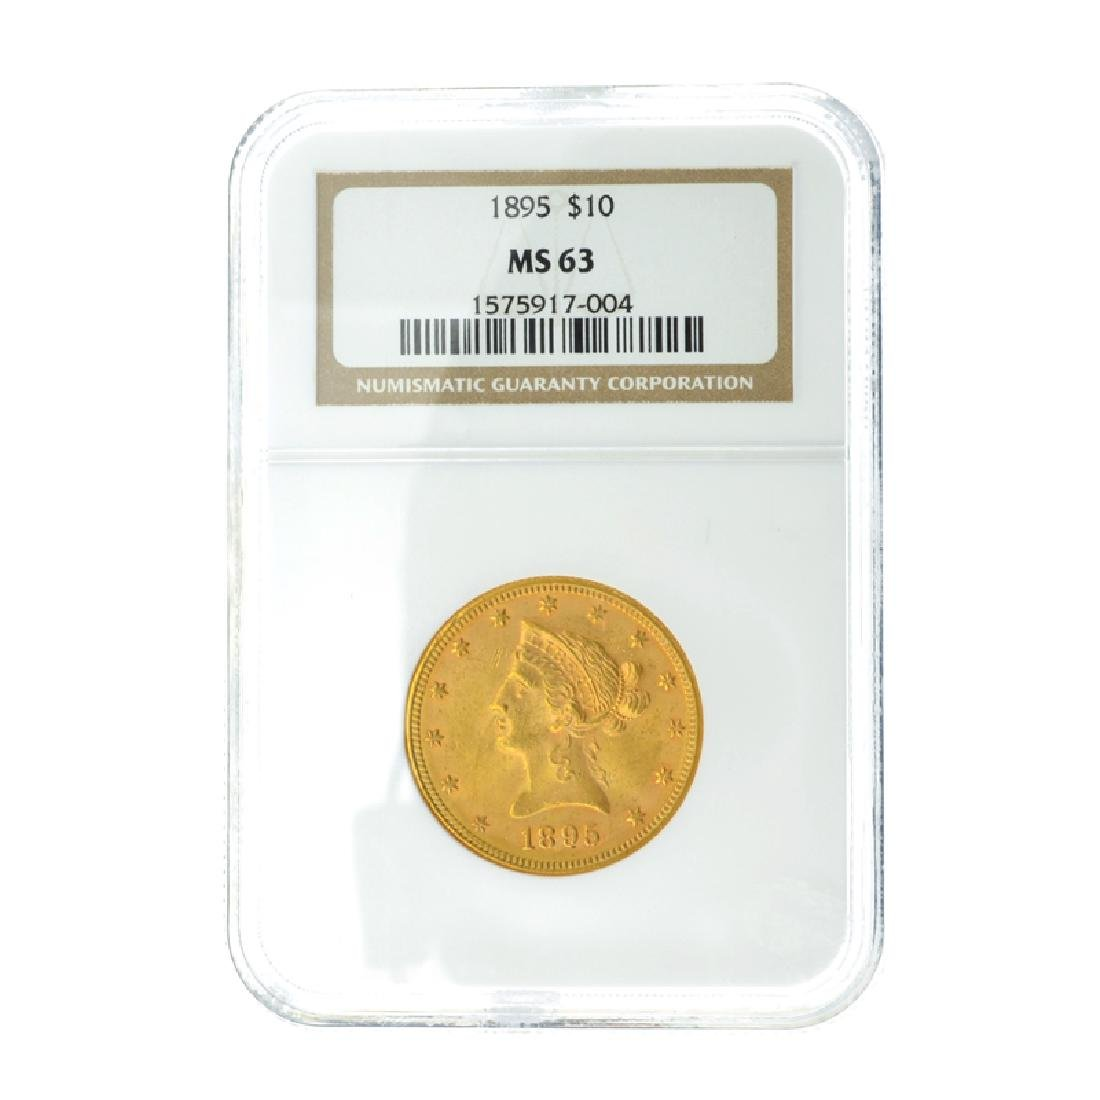 *1895 $10 U.S. MS 63 Liberty Head Gold Coin (DF)